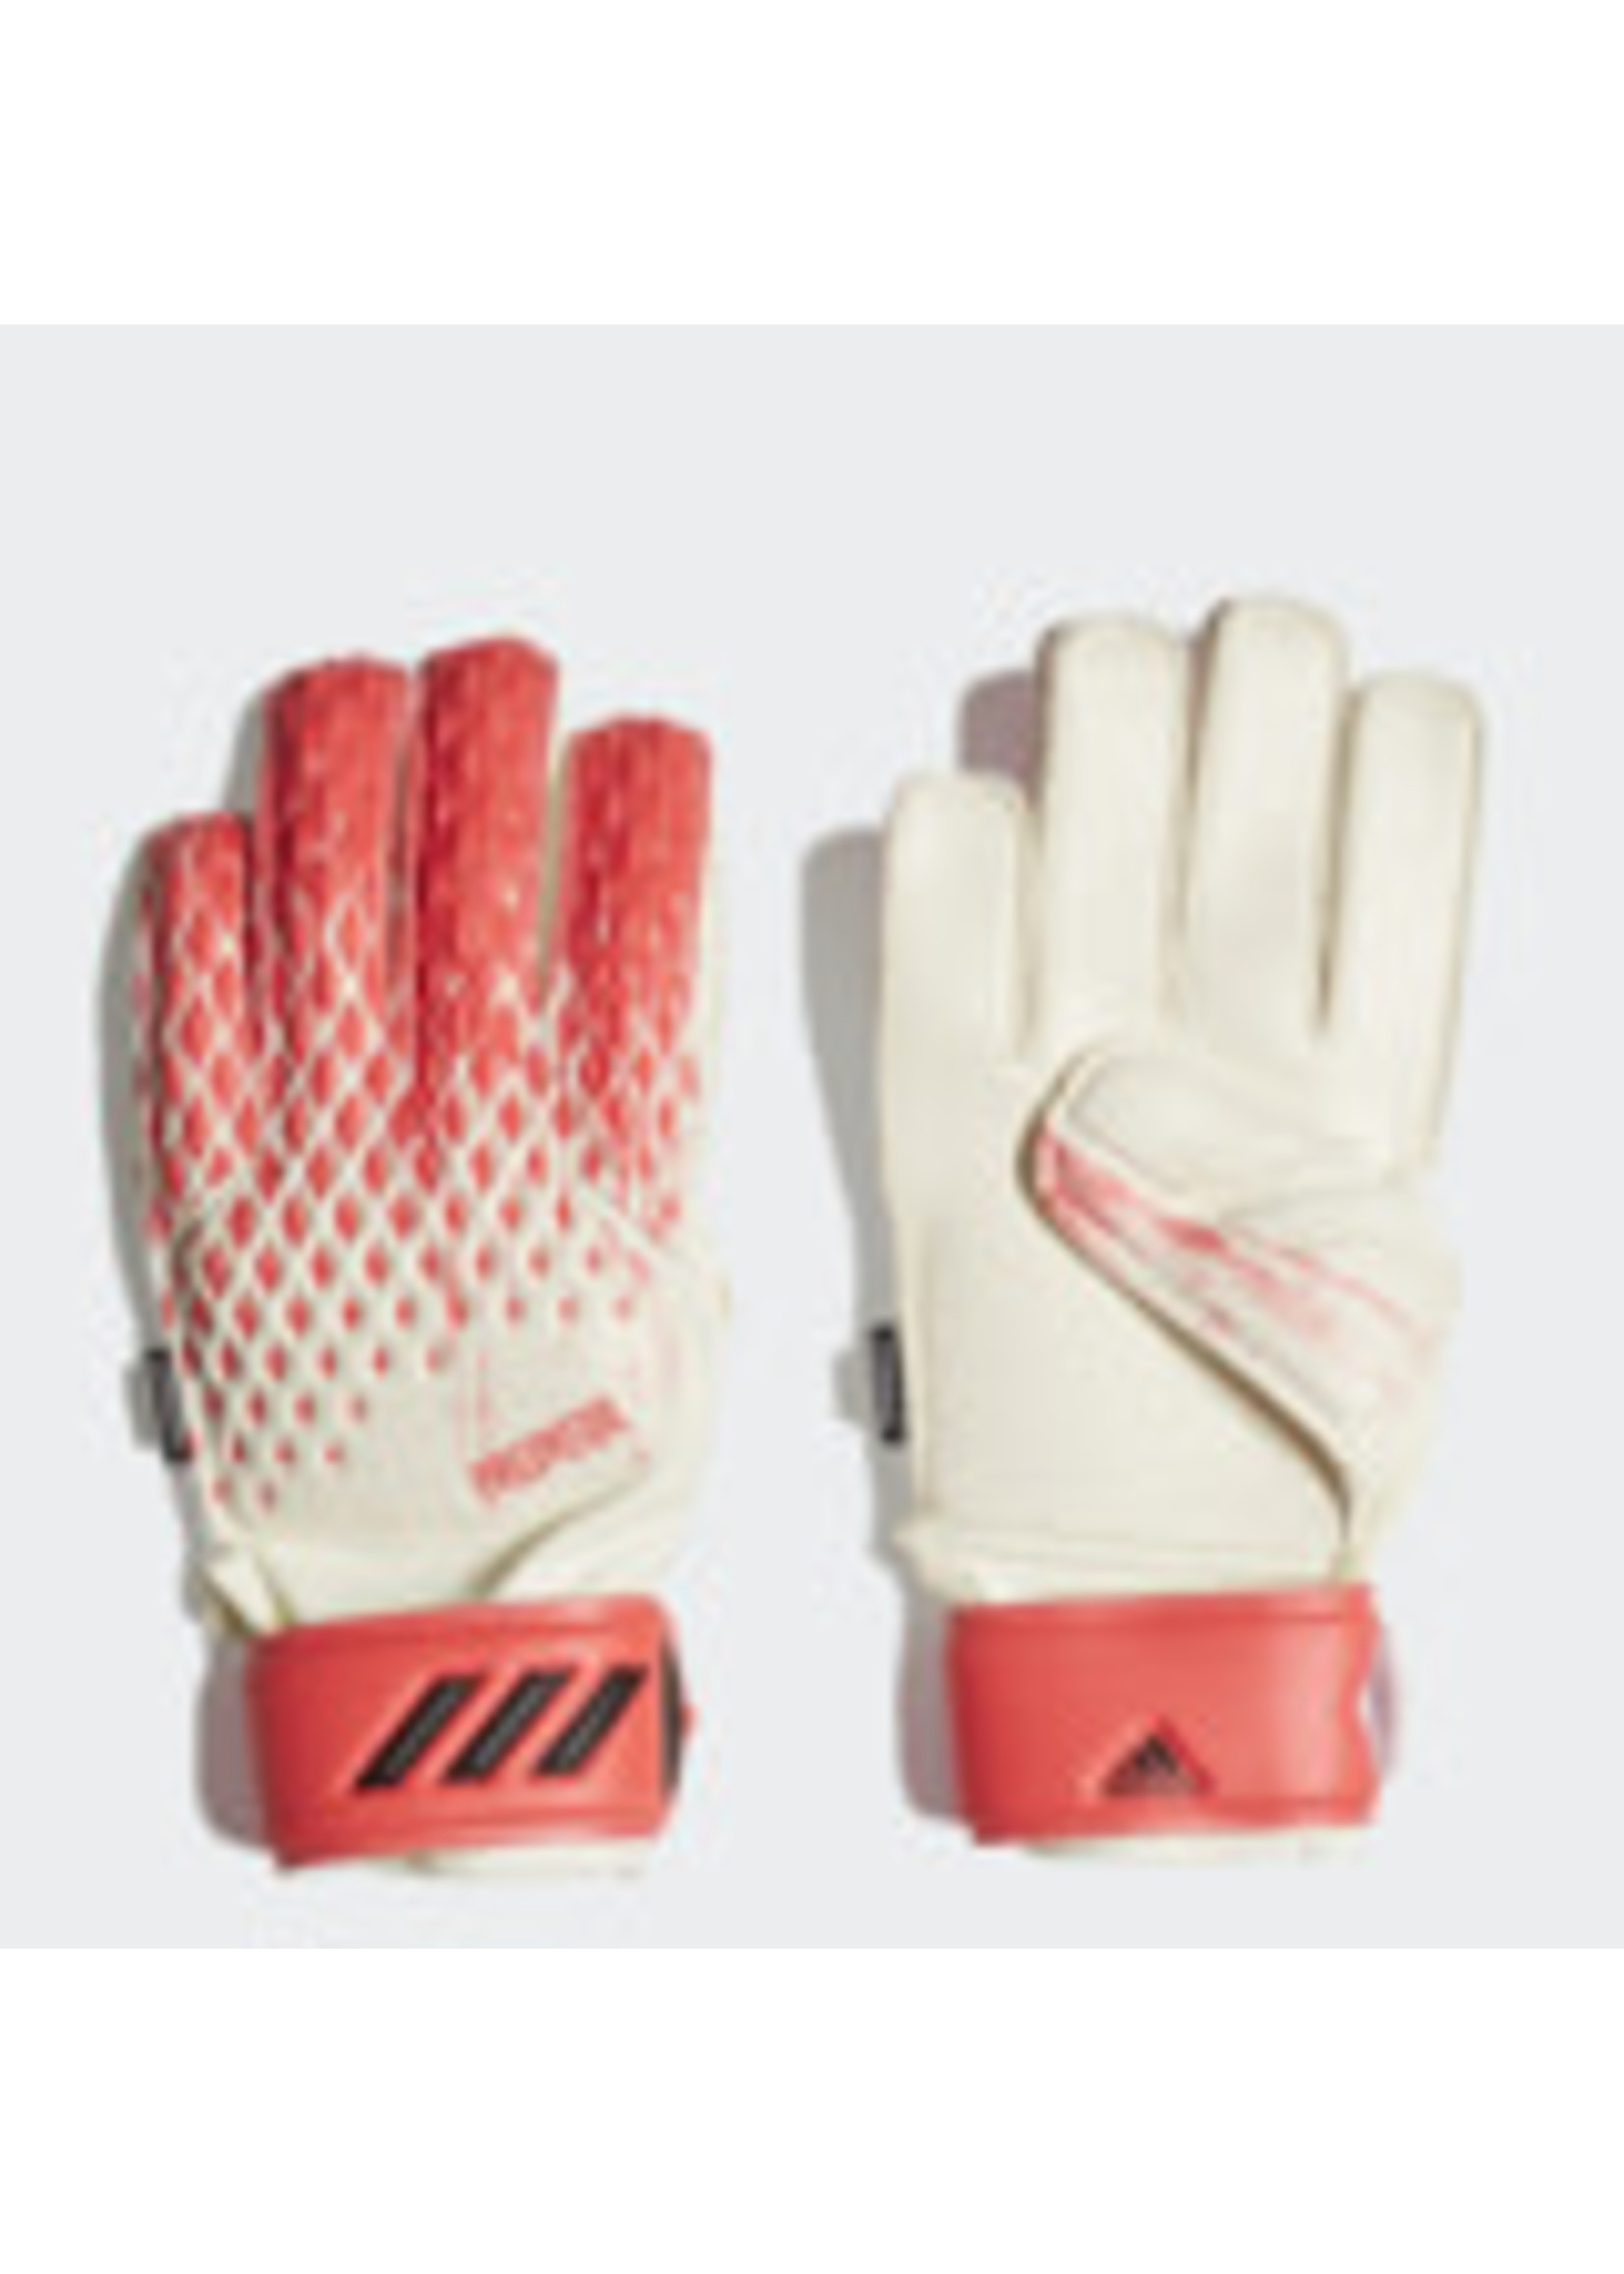 Adidas Predator20 Match Fingersave Junior